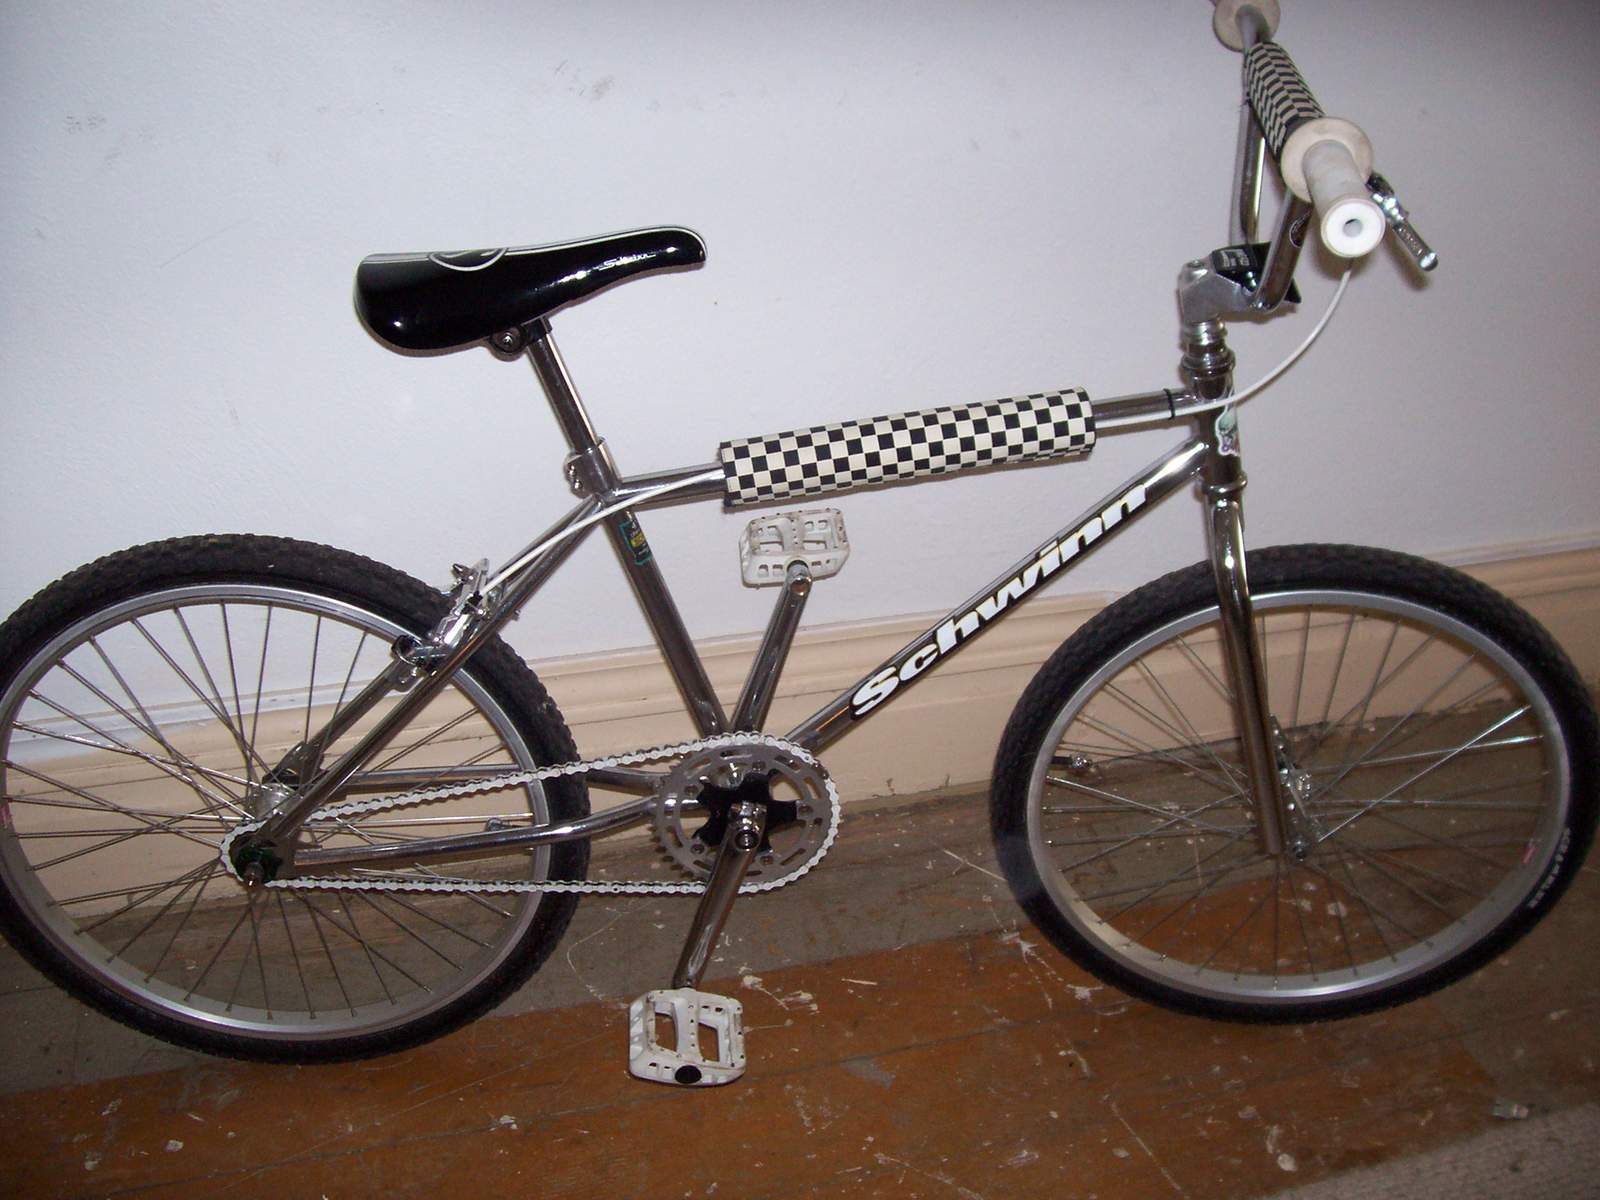 https://s3.amazonaws.com/uploads.bmxmuseum.com/user-images/61851/100_968359a070d0e4.jpg